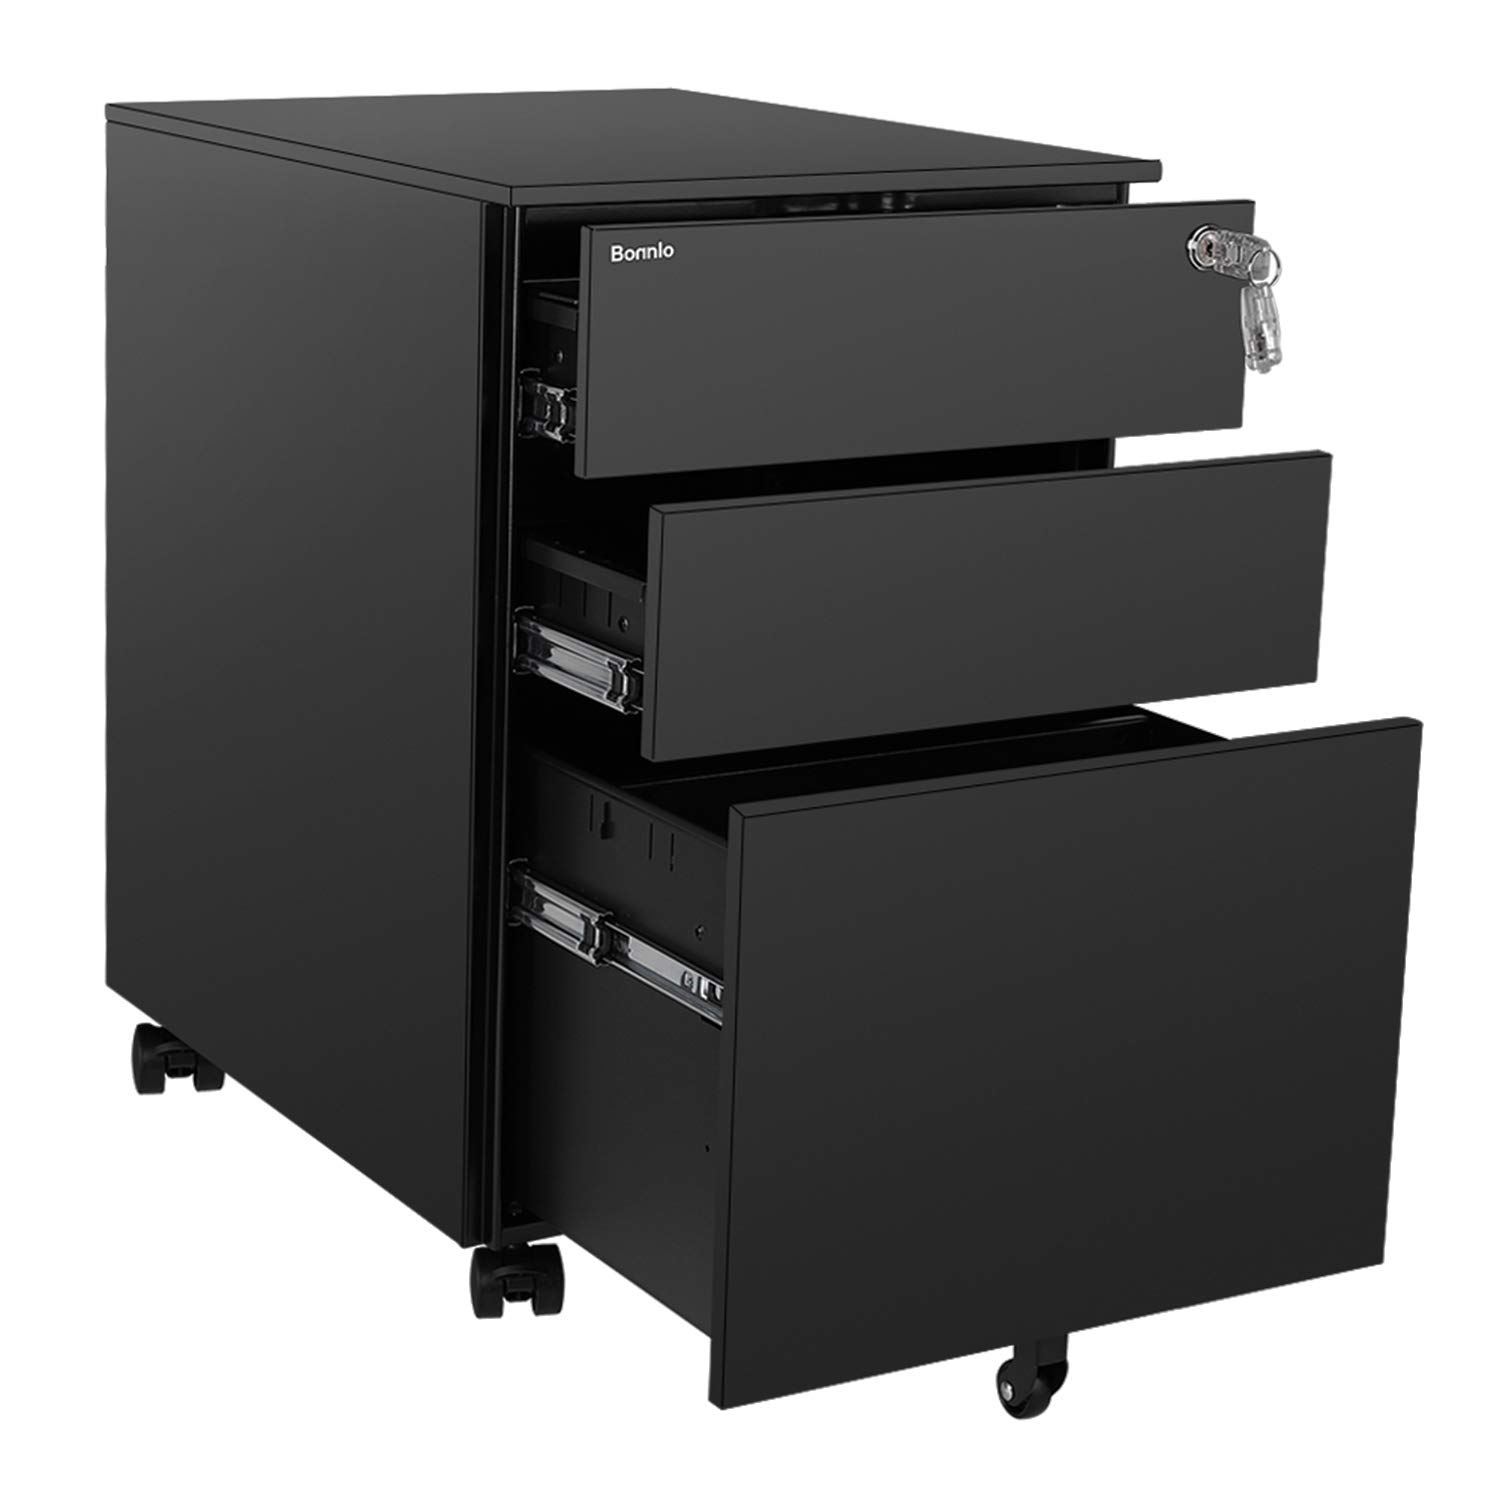 Bonnlo Mobile File Cabinet with Lock, 3 Smooth Gliding Drawers and Wheels for Home Office, Includes 25-Pack Hanging File Folders, Fully Assembled, Black by Bonnlo (Image #8)